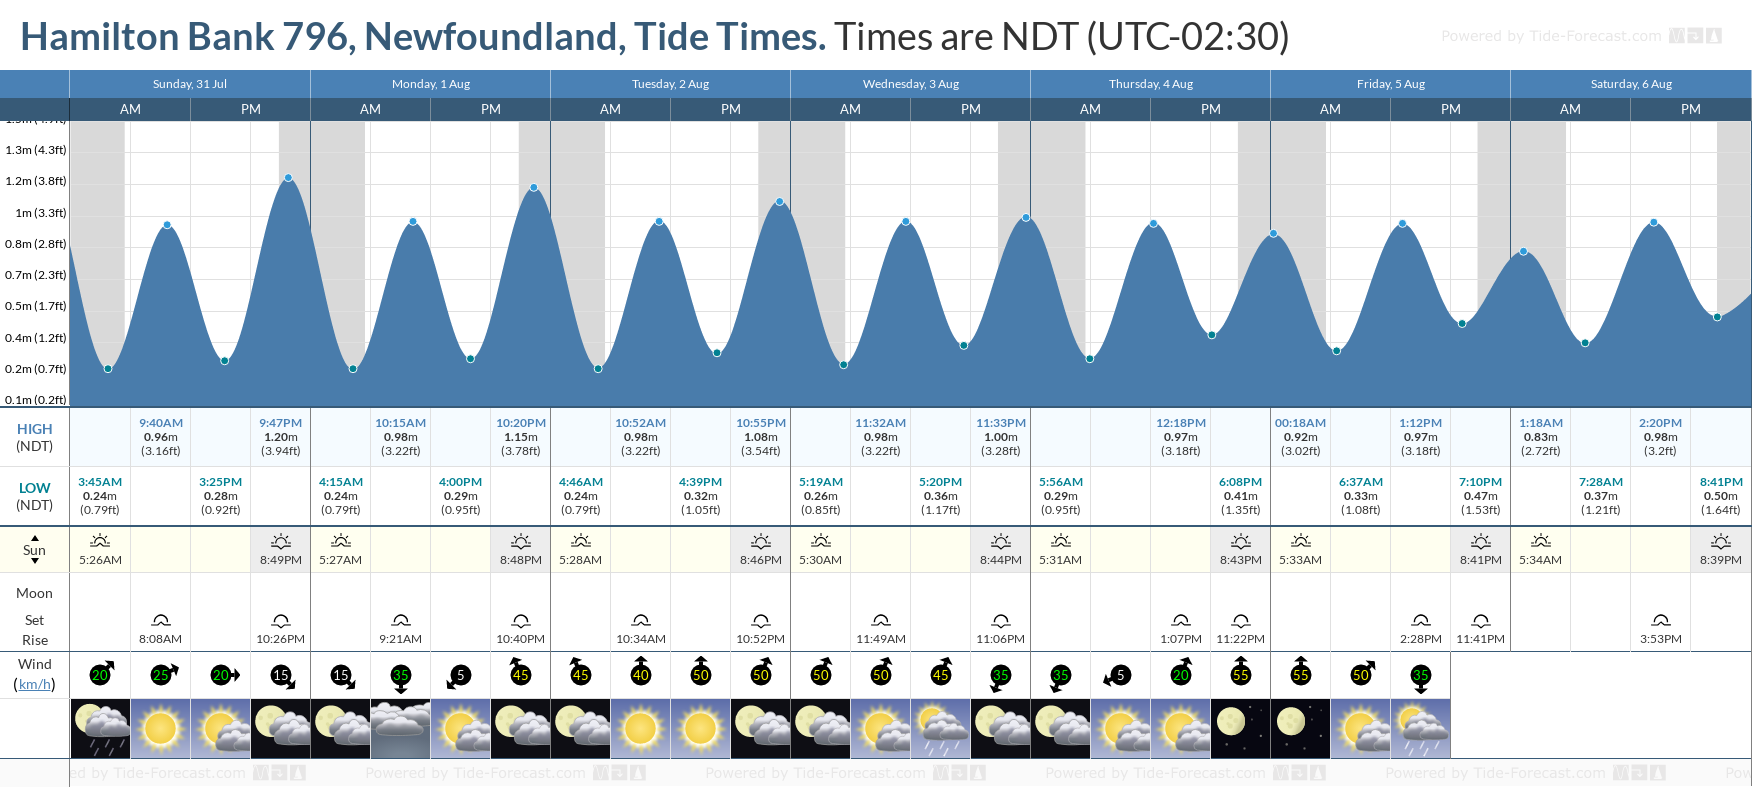 Hamilton Bank 796, Newfoundland Tide Chart including high and low tide tide times for the next 7 days